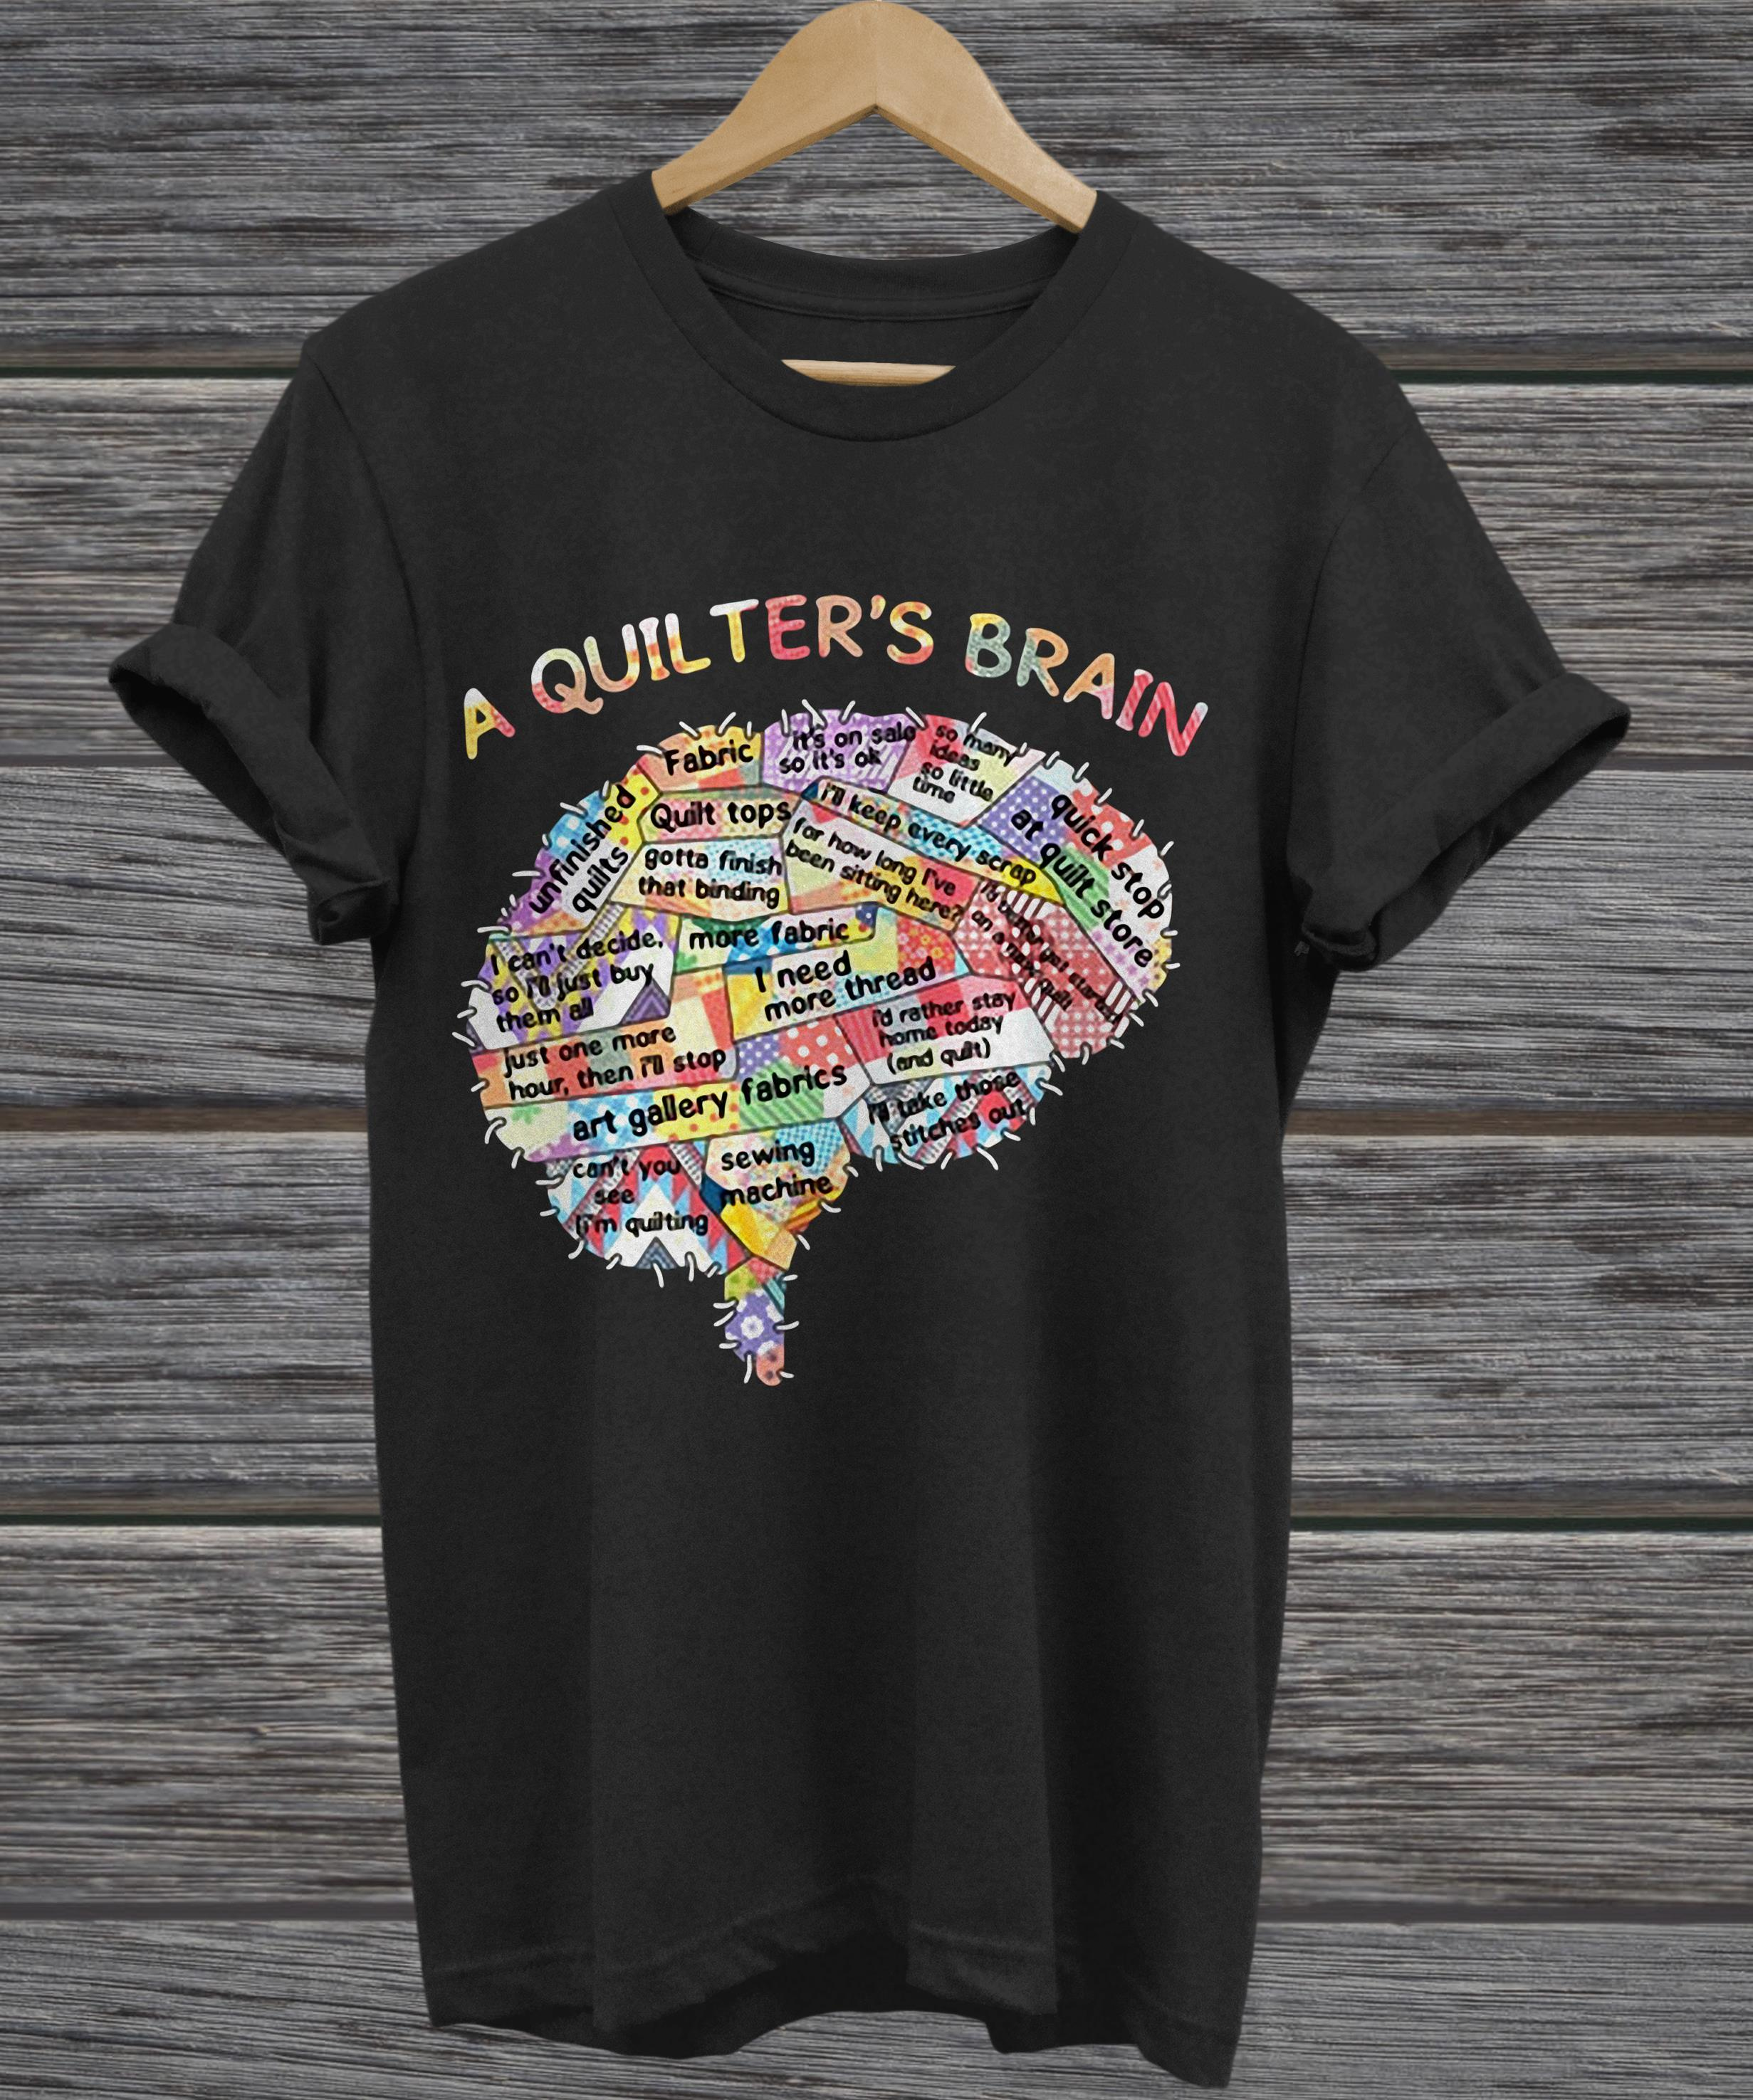 A quilter's brain of people v-neck